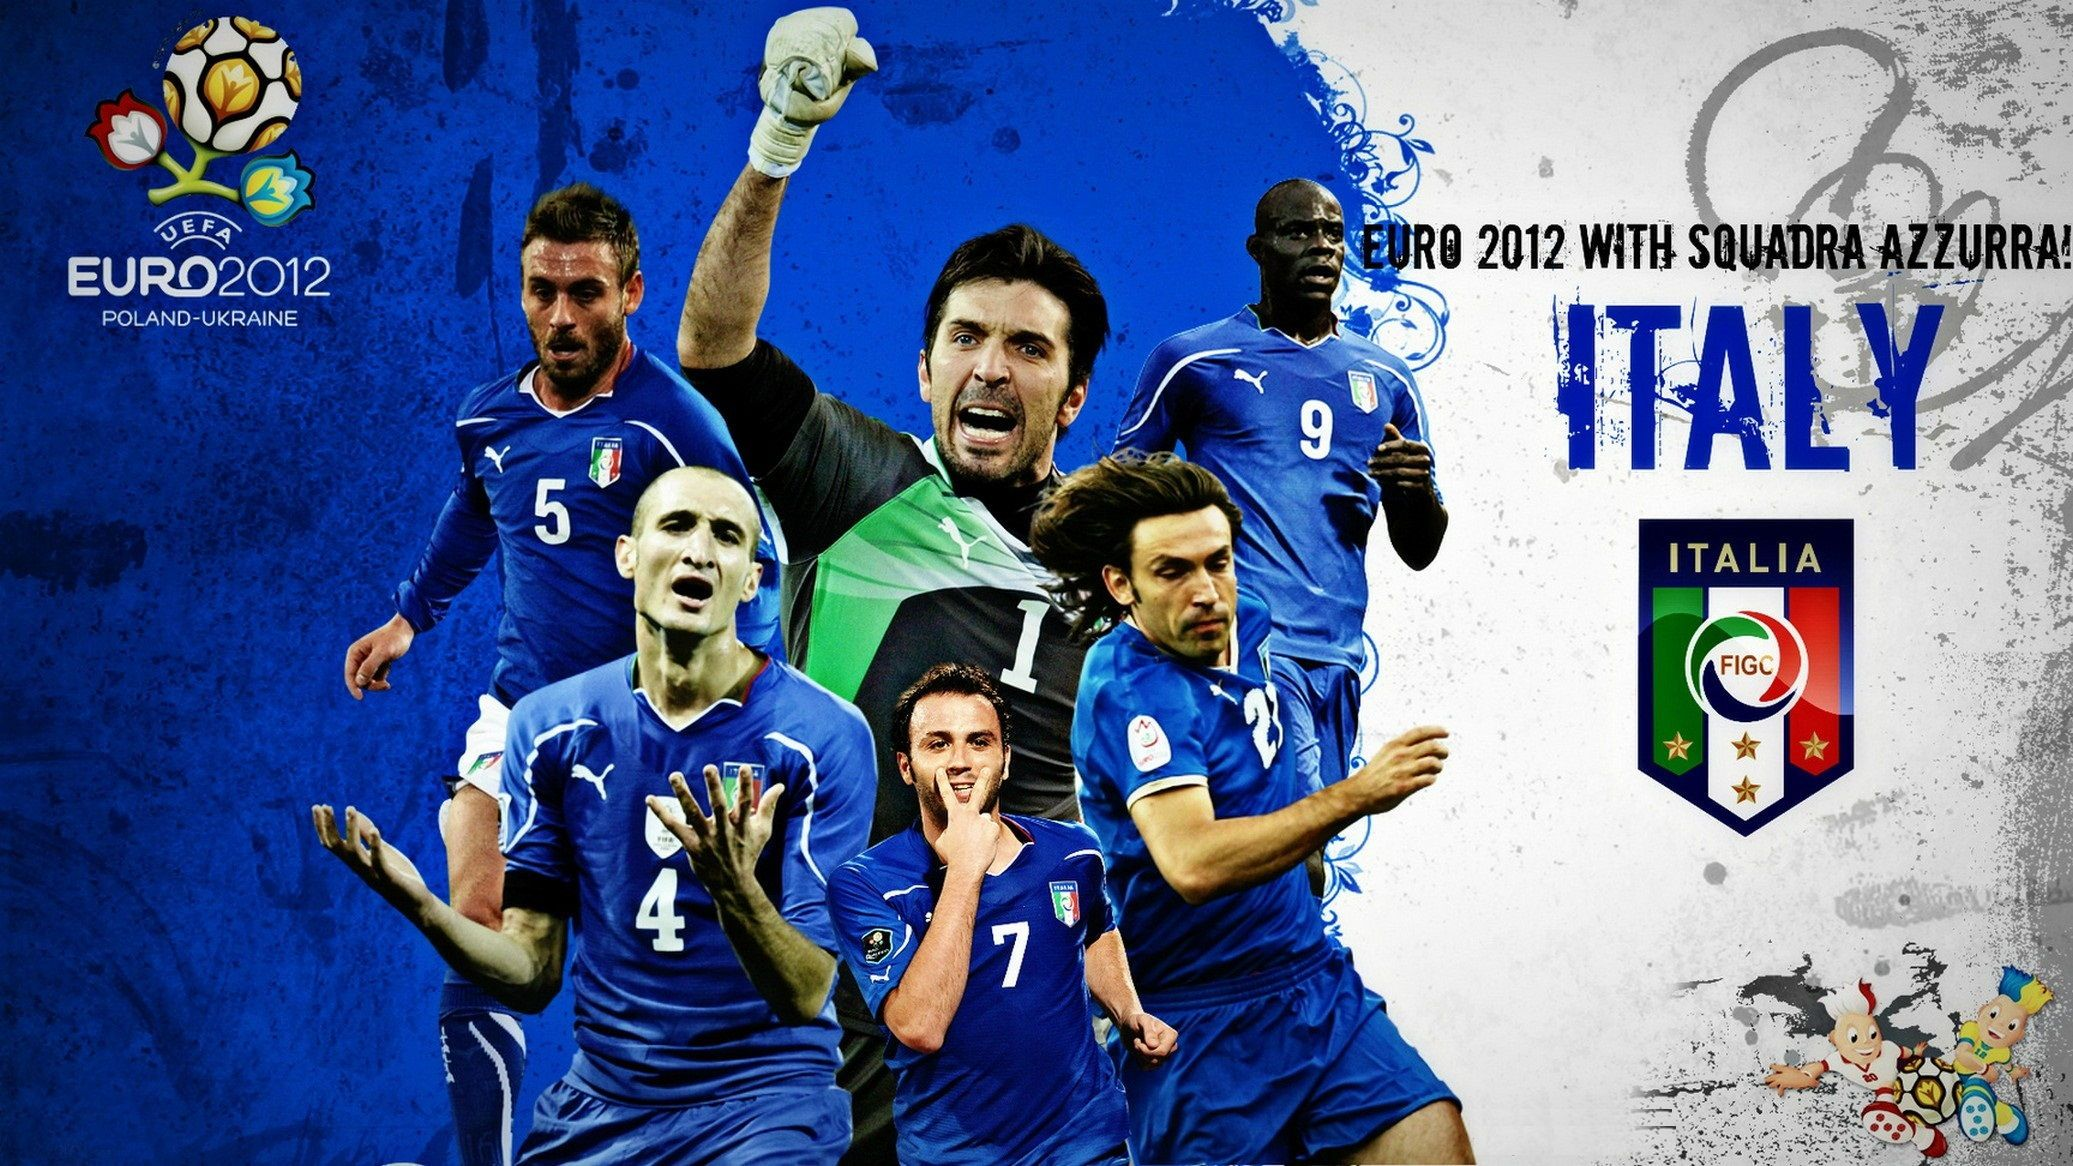 Italy National Football Team Wallpapers Hd Wallpapers Backgrounds Of Your Choice Italy National Football Team National Football Teams Team Wallpaper